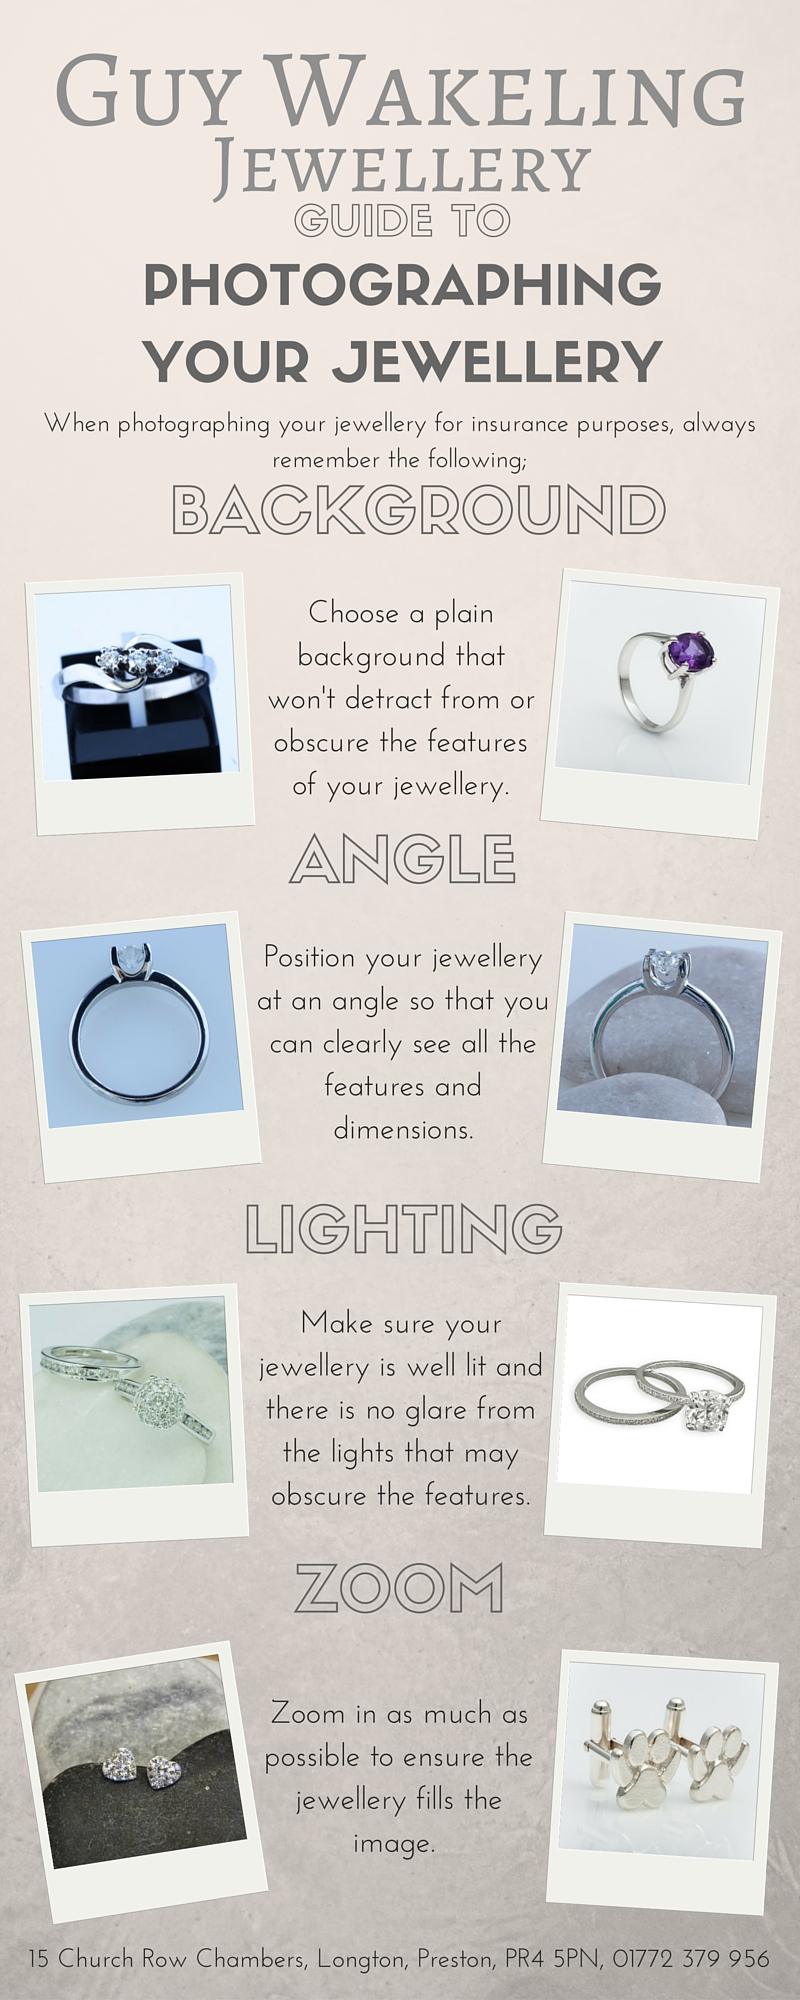 Photographing Jewellery Infographic